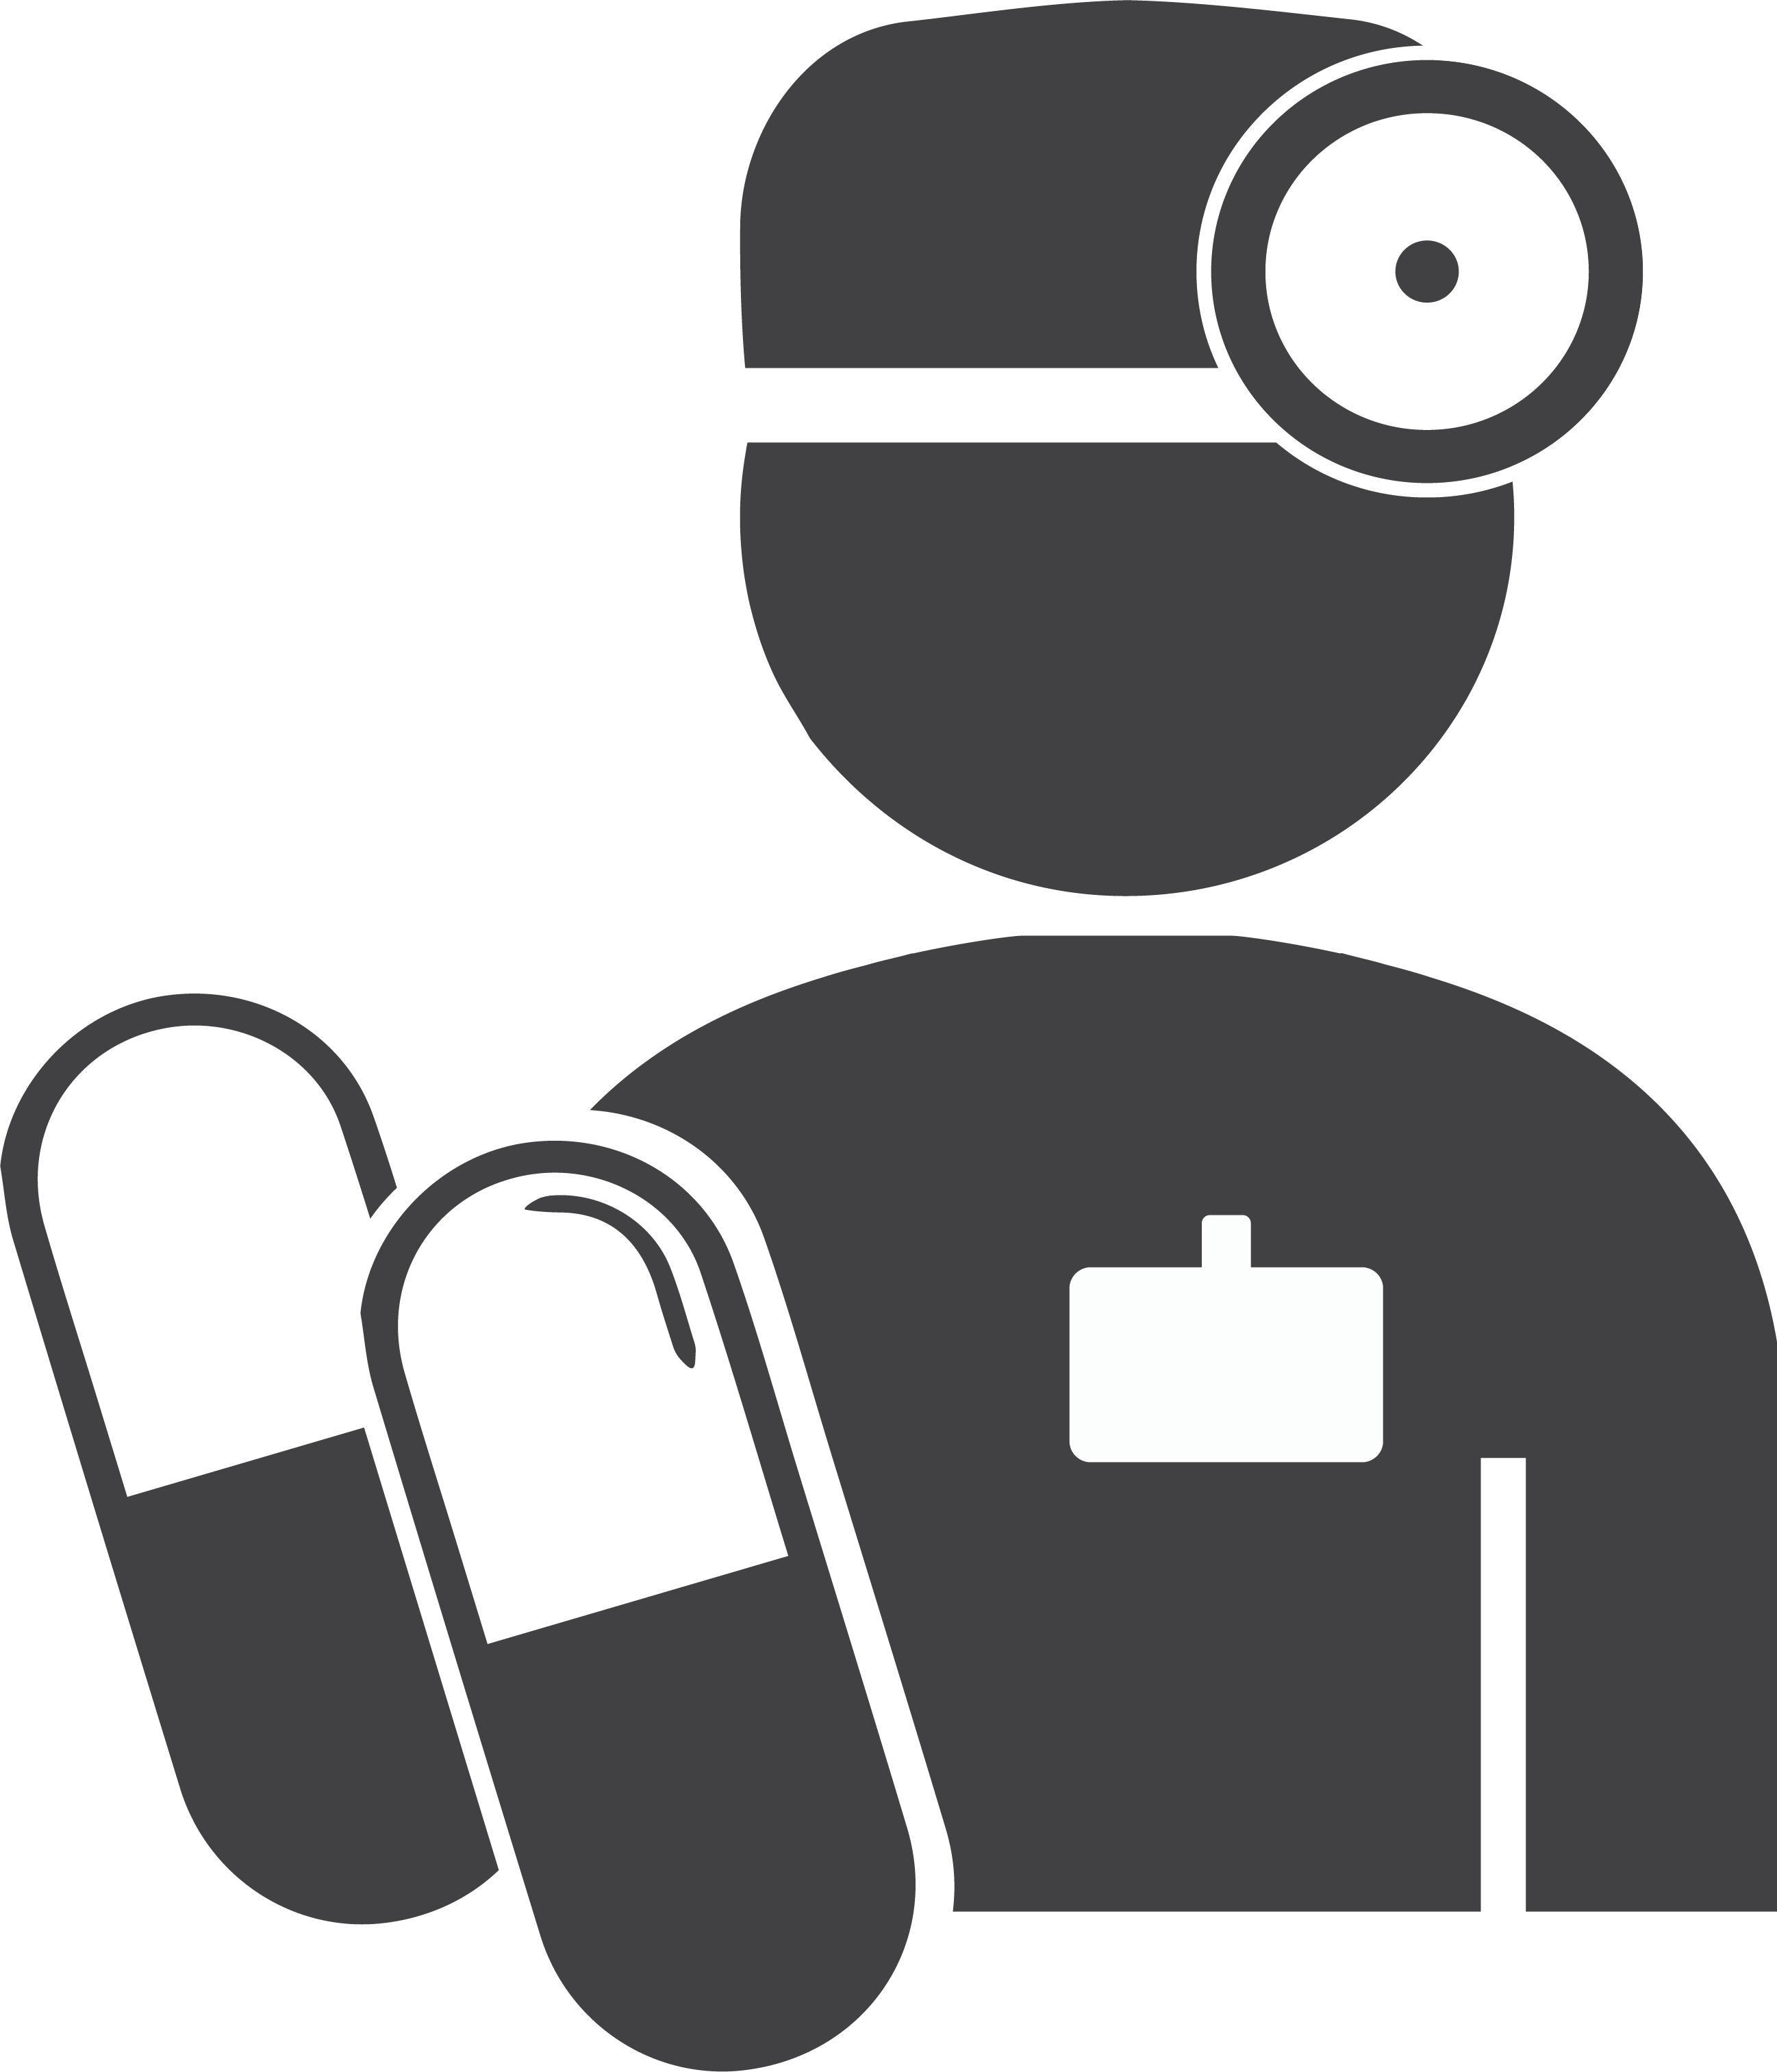 Clipart doctor black and white. Physician medicine icon capsule